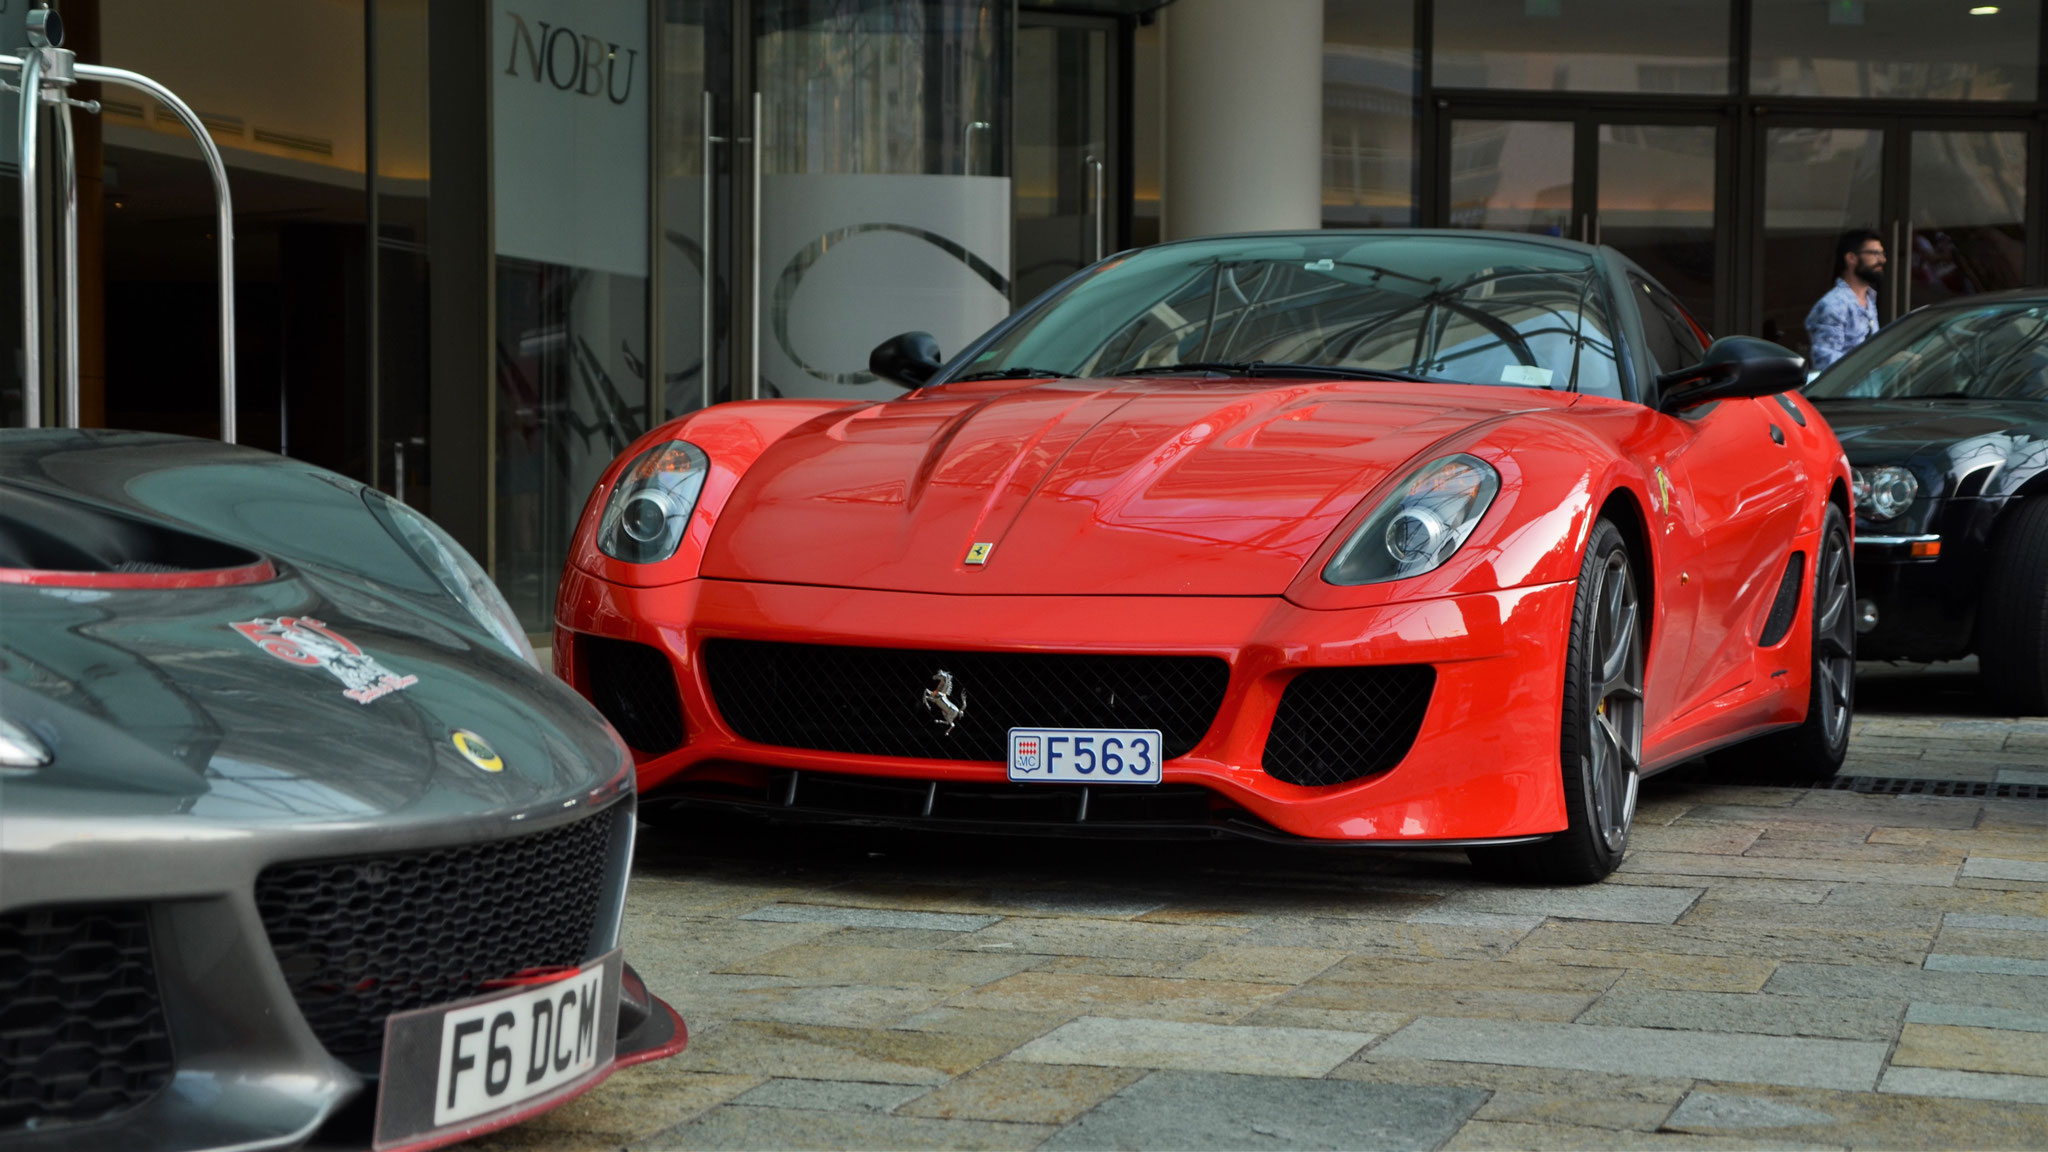 Ferrari 599 GTO (Fake) - F563 (MC)